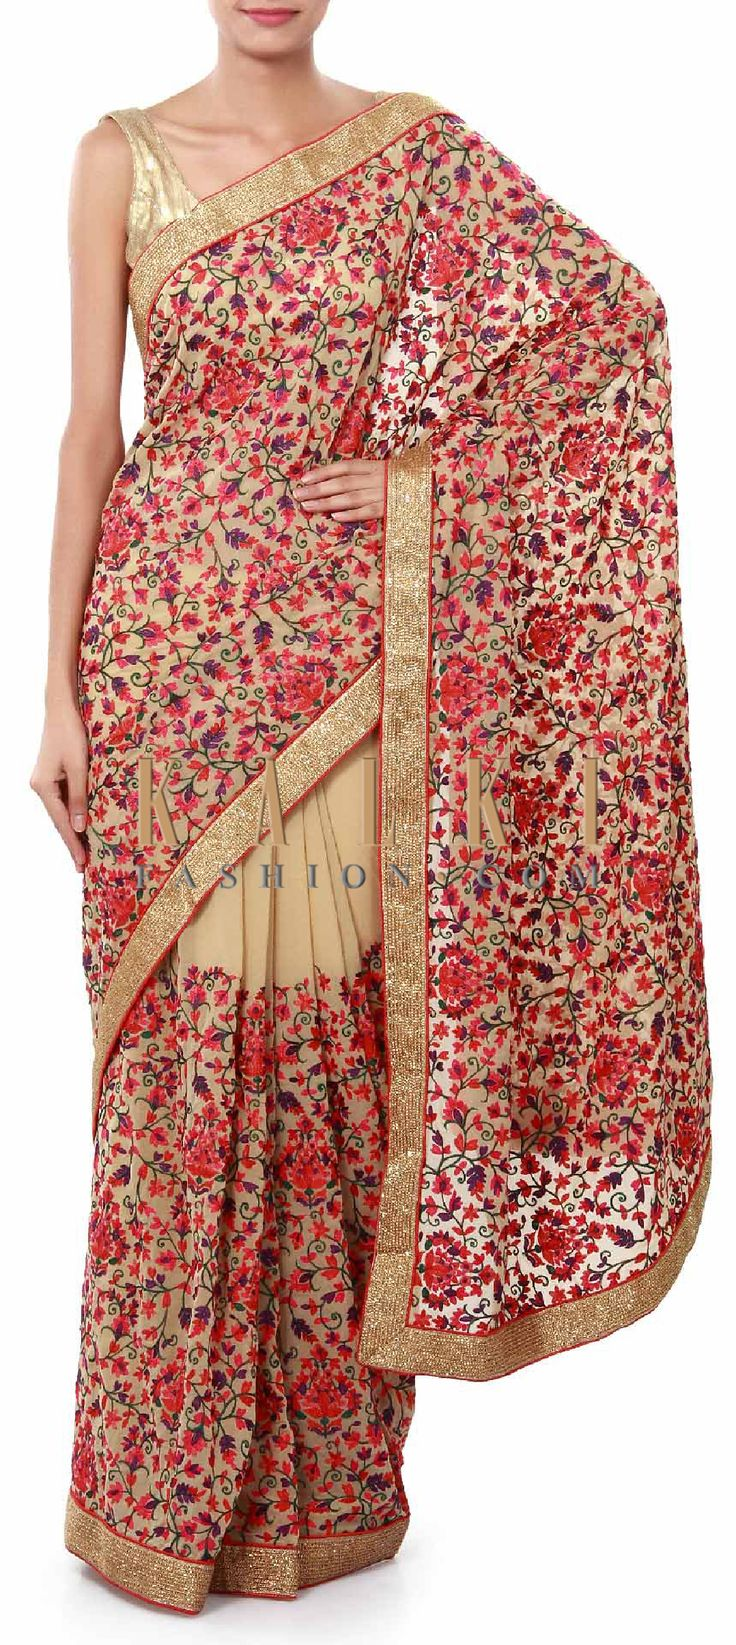 Buy Online from the link below. We ship worldwide (Free Shipping over US$100). Product SKU - 316752. Product Price - $159.00. Product link - http://www.kalkifashion.com/beige-saree-adorn-in-resham-embroidery-all-over-only-on-kalki.html